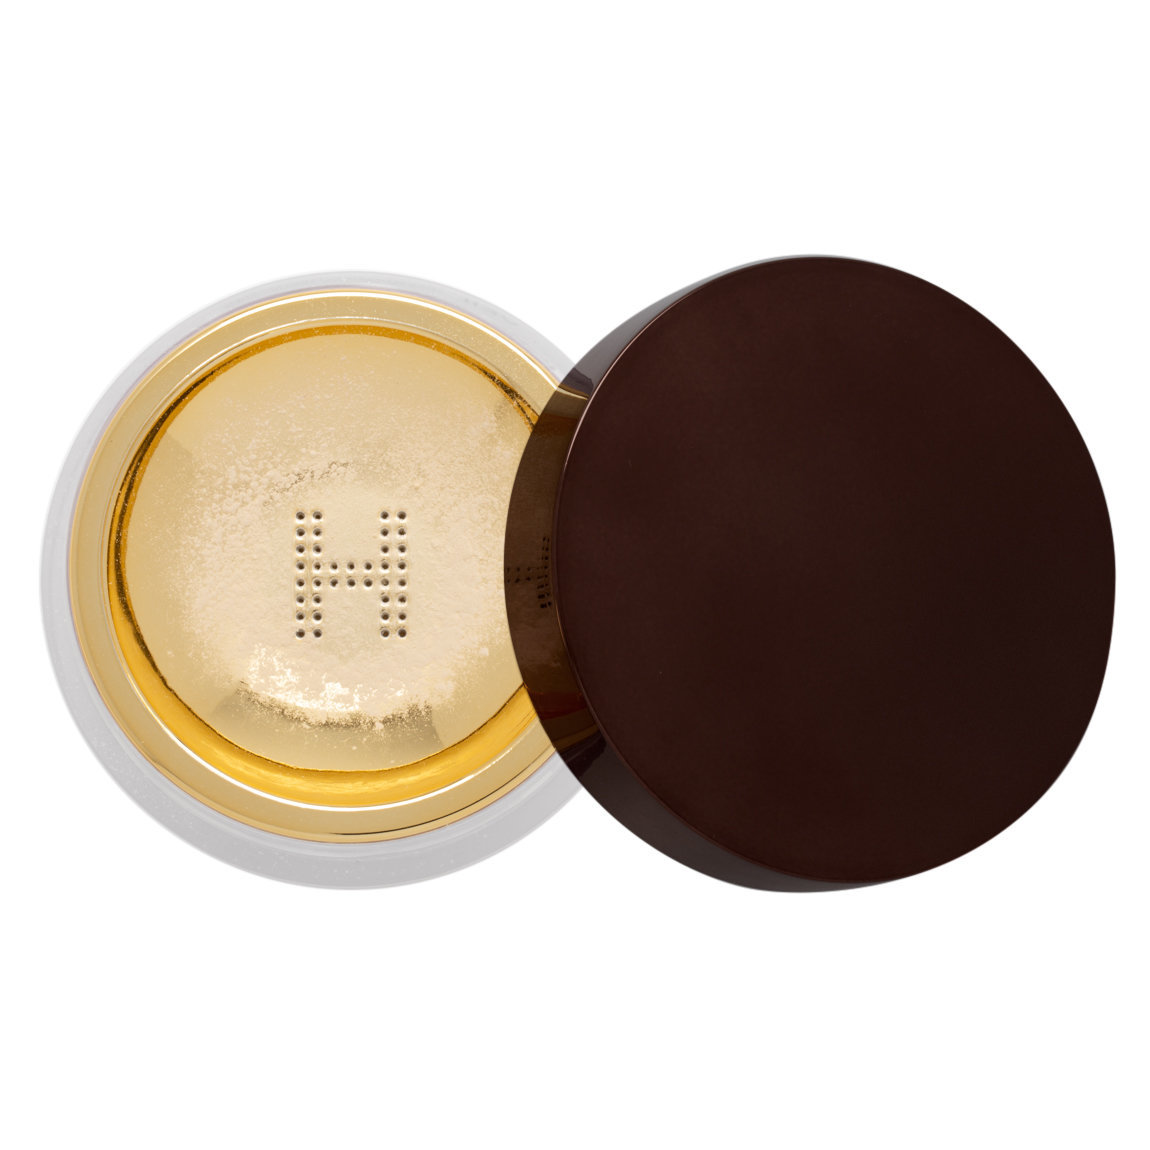 Hourglass Veil Translucent Setting Powder product smear.